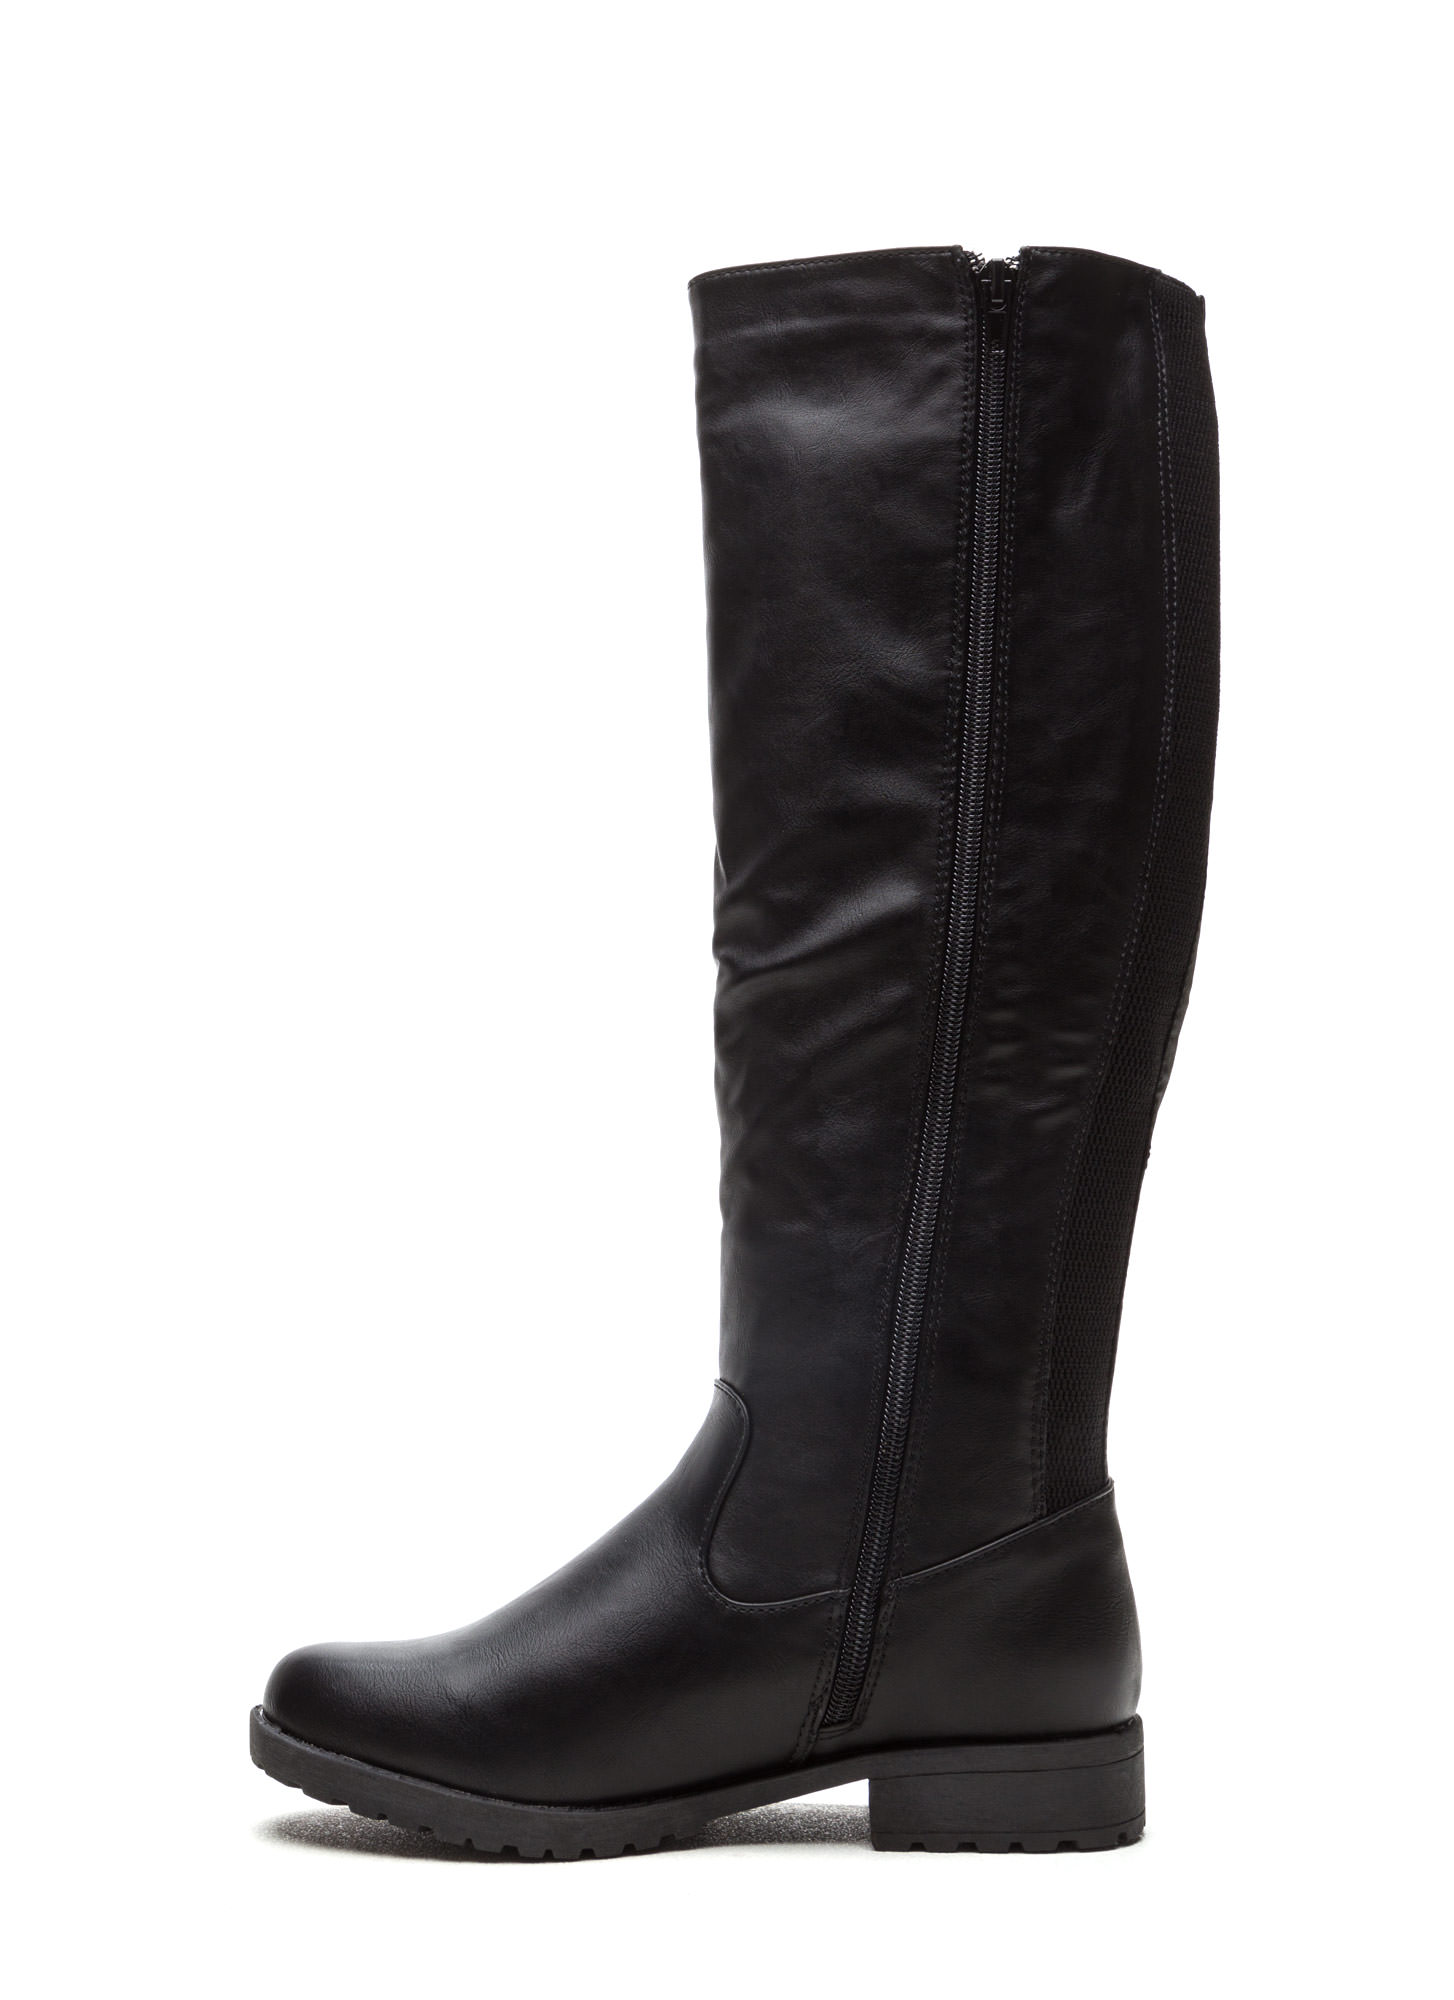 They're Everything Mixed Media Boots BLACK